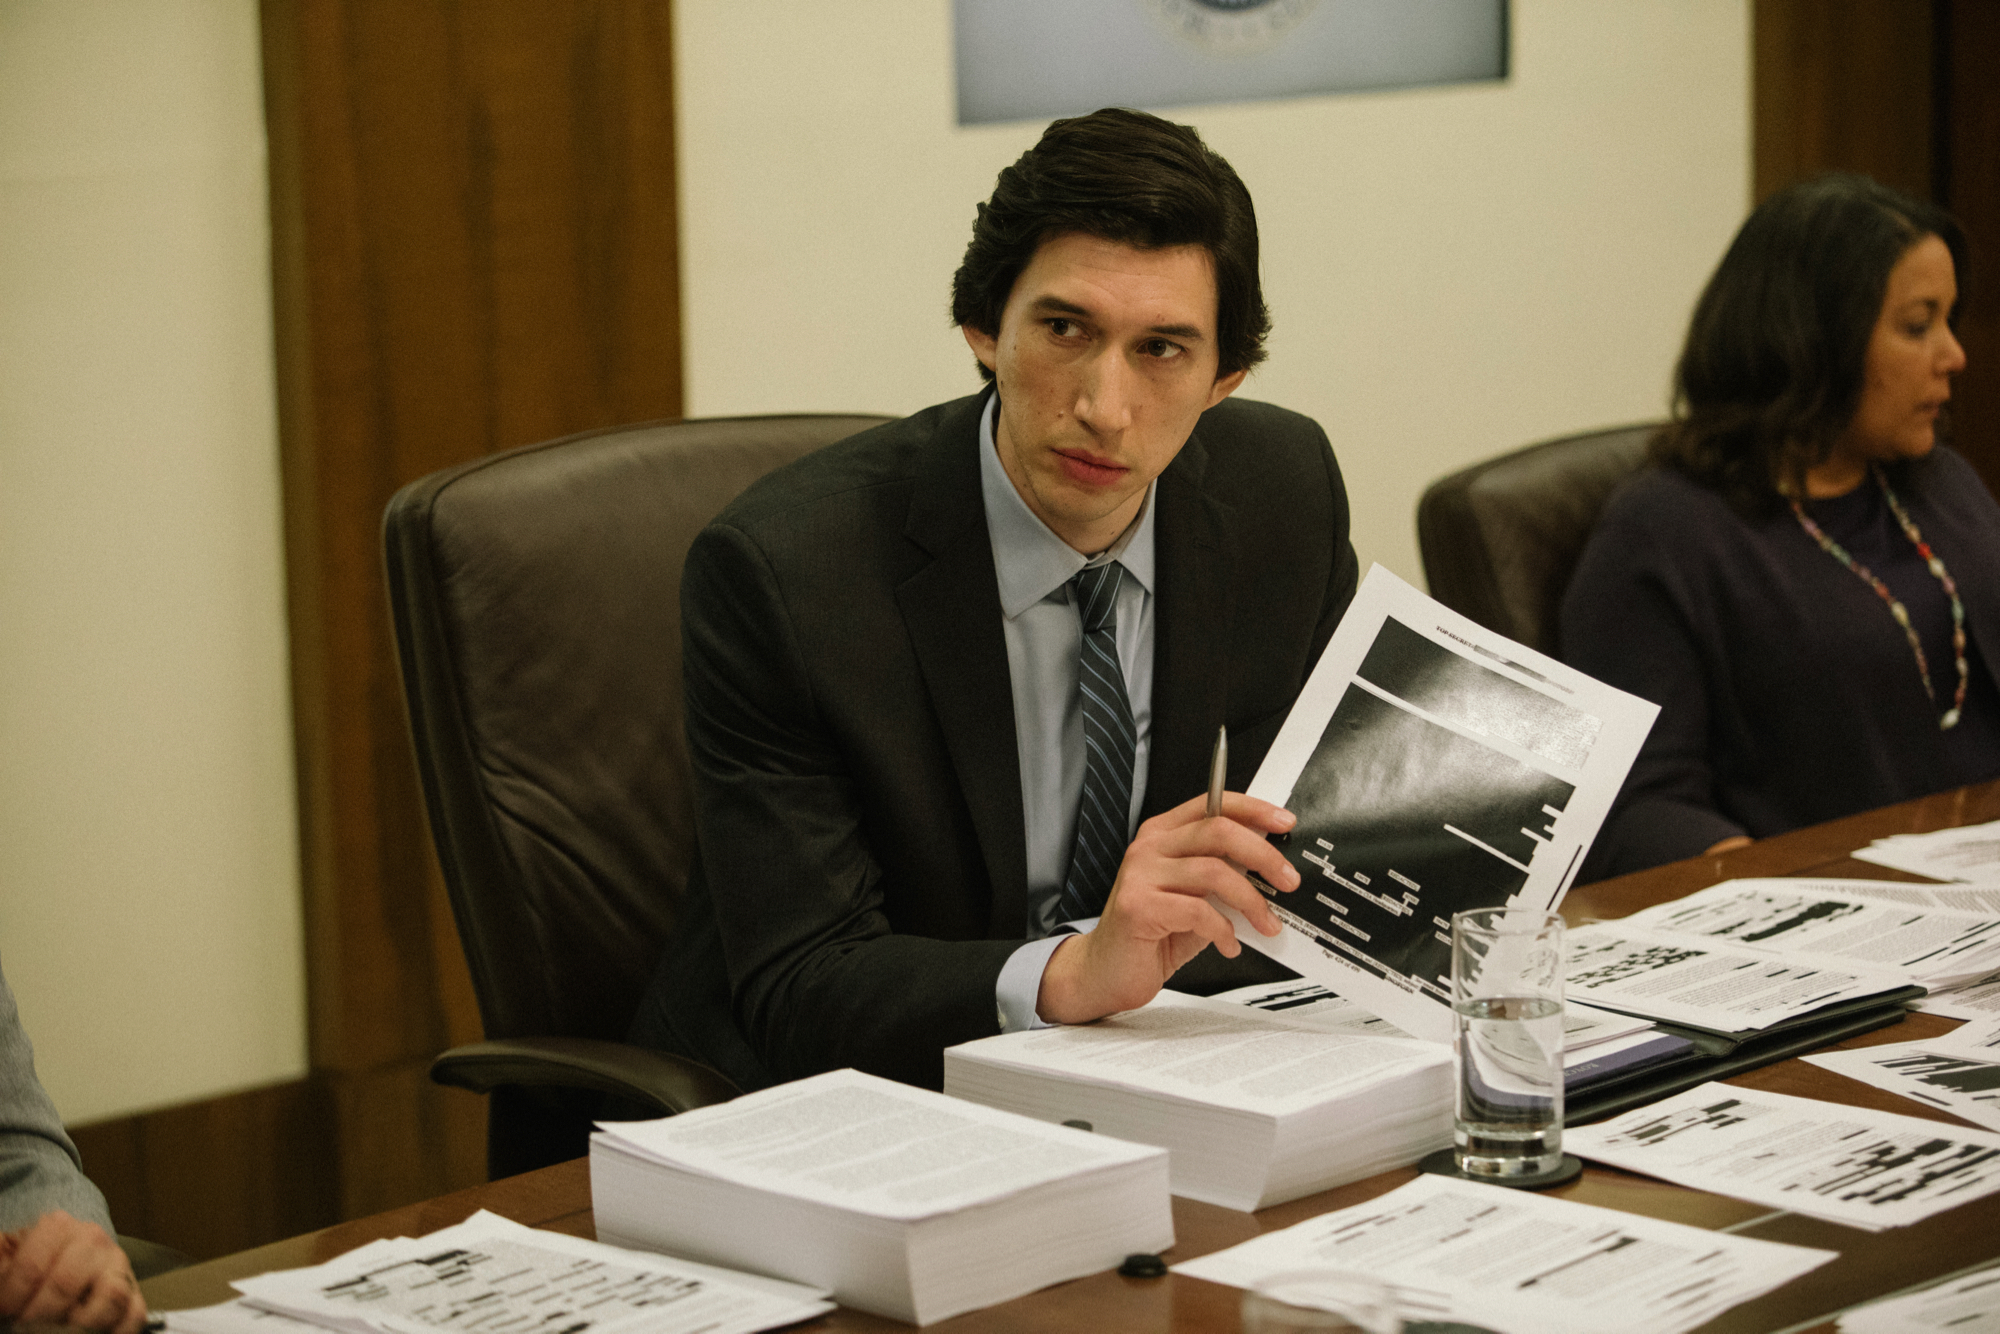 Adam Driver stars as Daniel J. Jones in The Report.